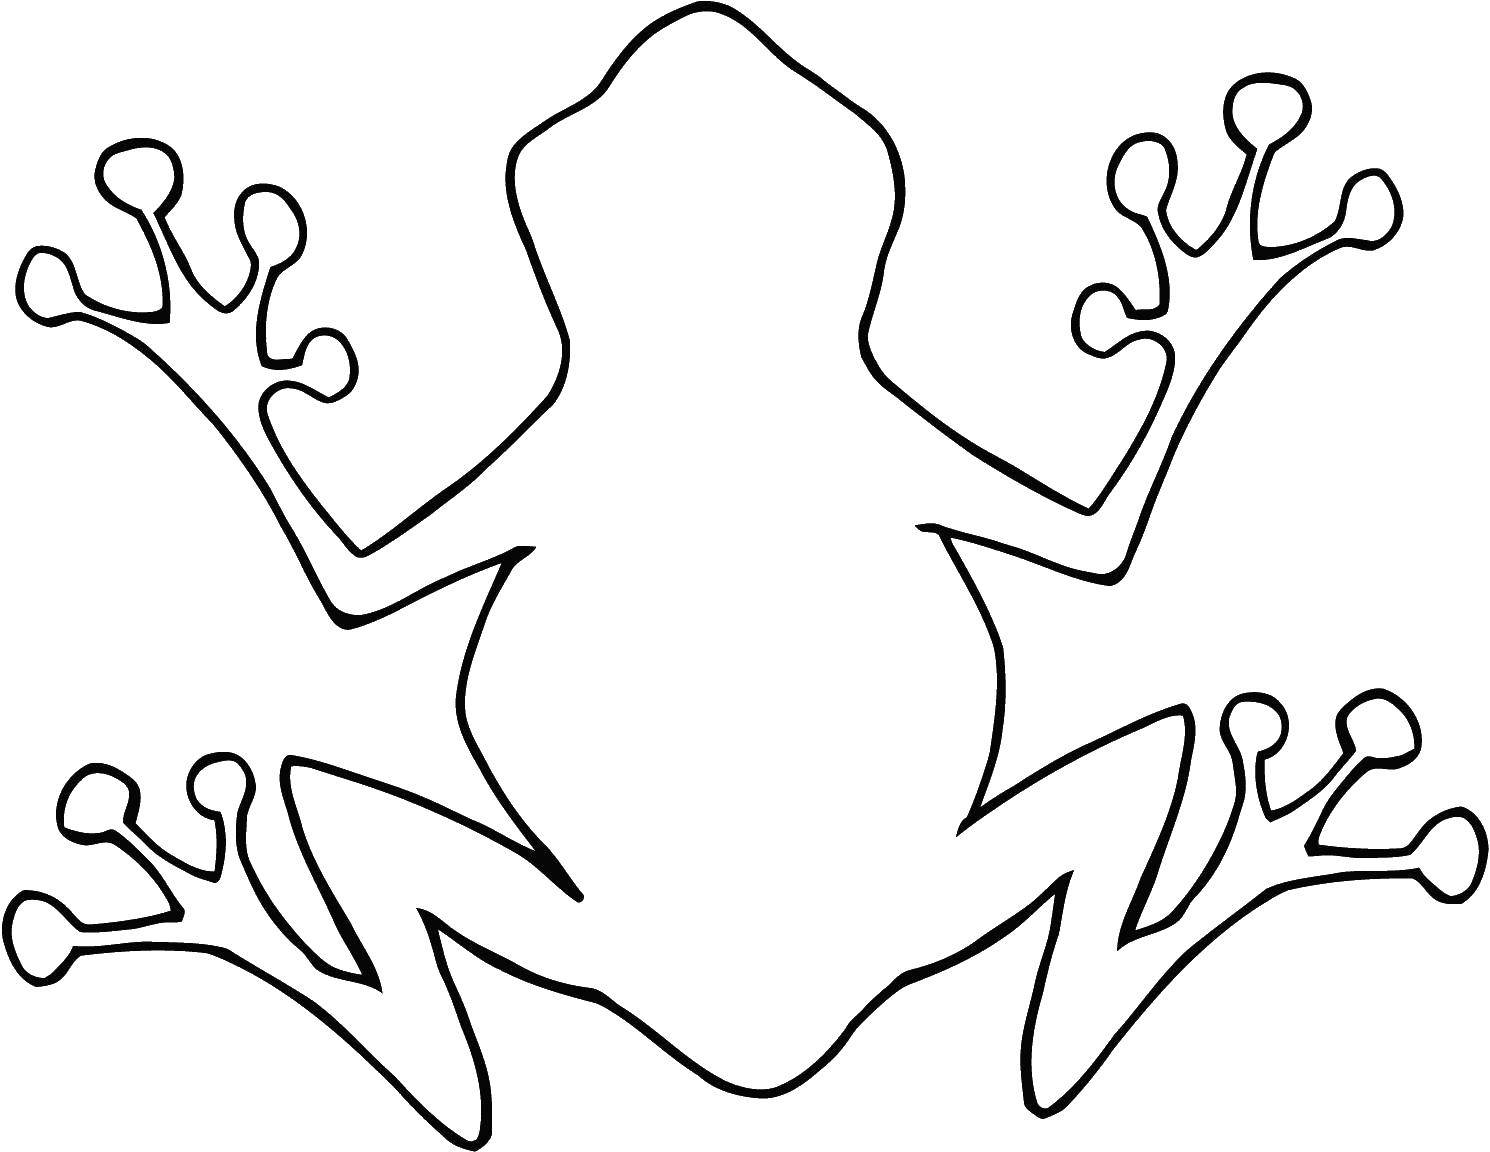 Coloring sheet The contours of the animal Download frog, stone.  Print ,amphibians,